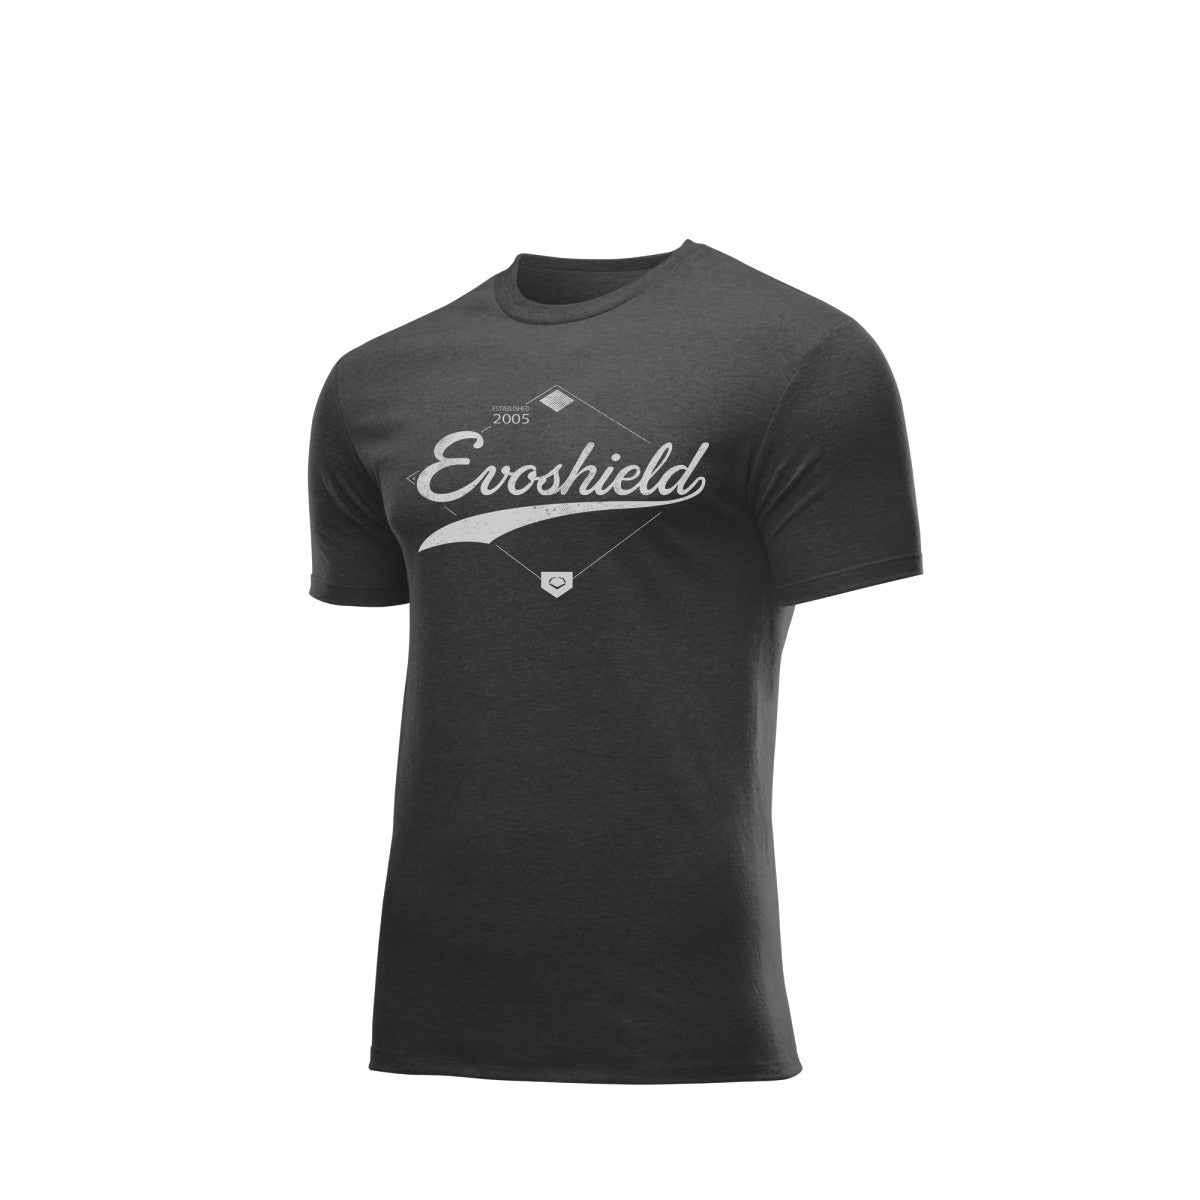 ? Men's Classic EvoShield T-Shirt